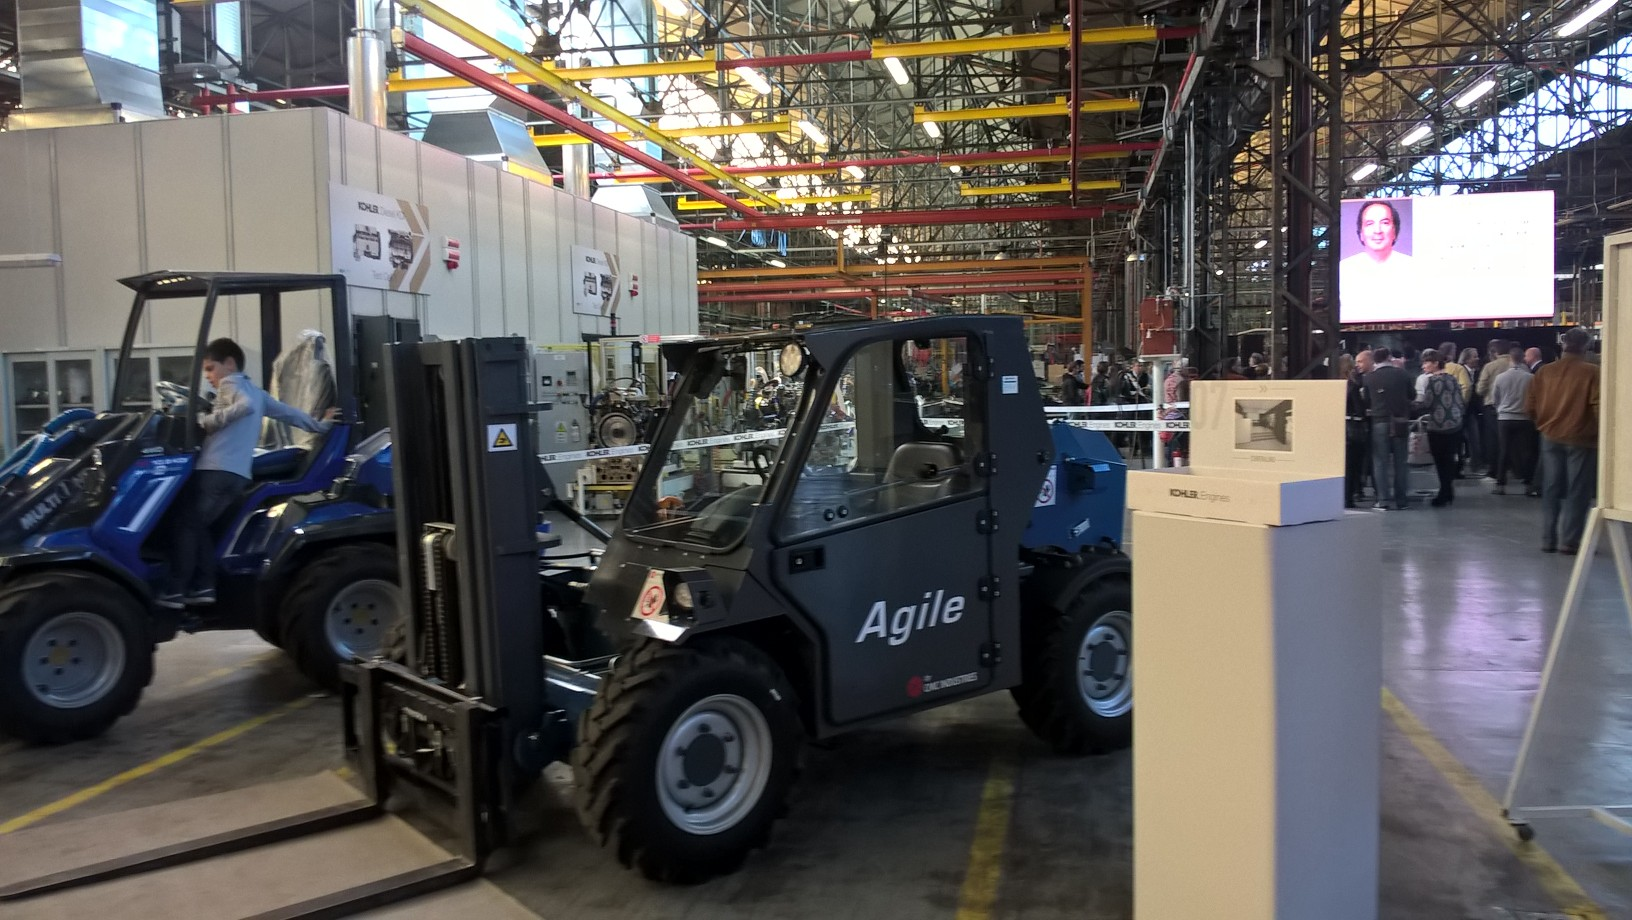 CMC Agile forklift exhibited on the Open Day of Kohler Engines